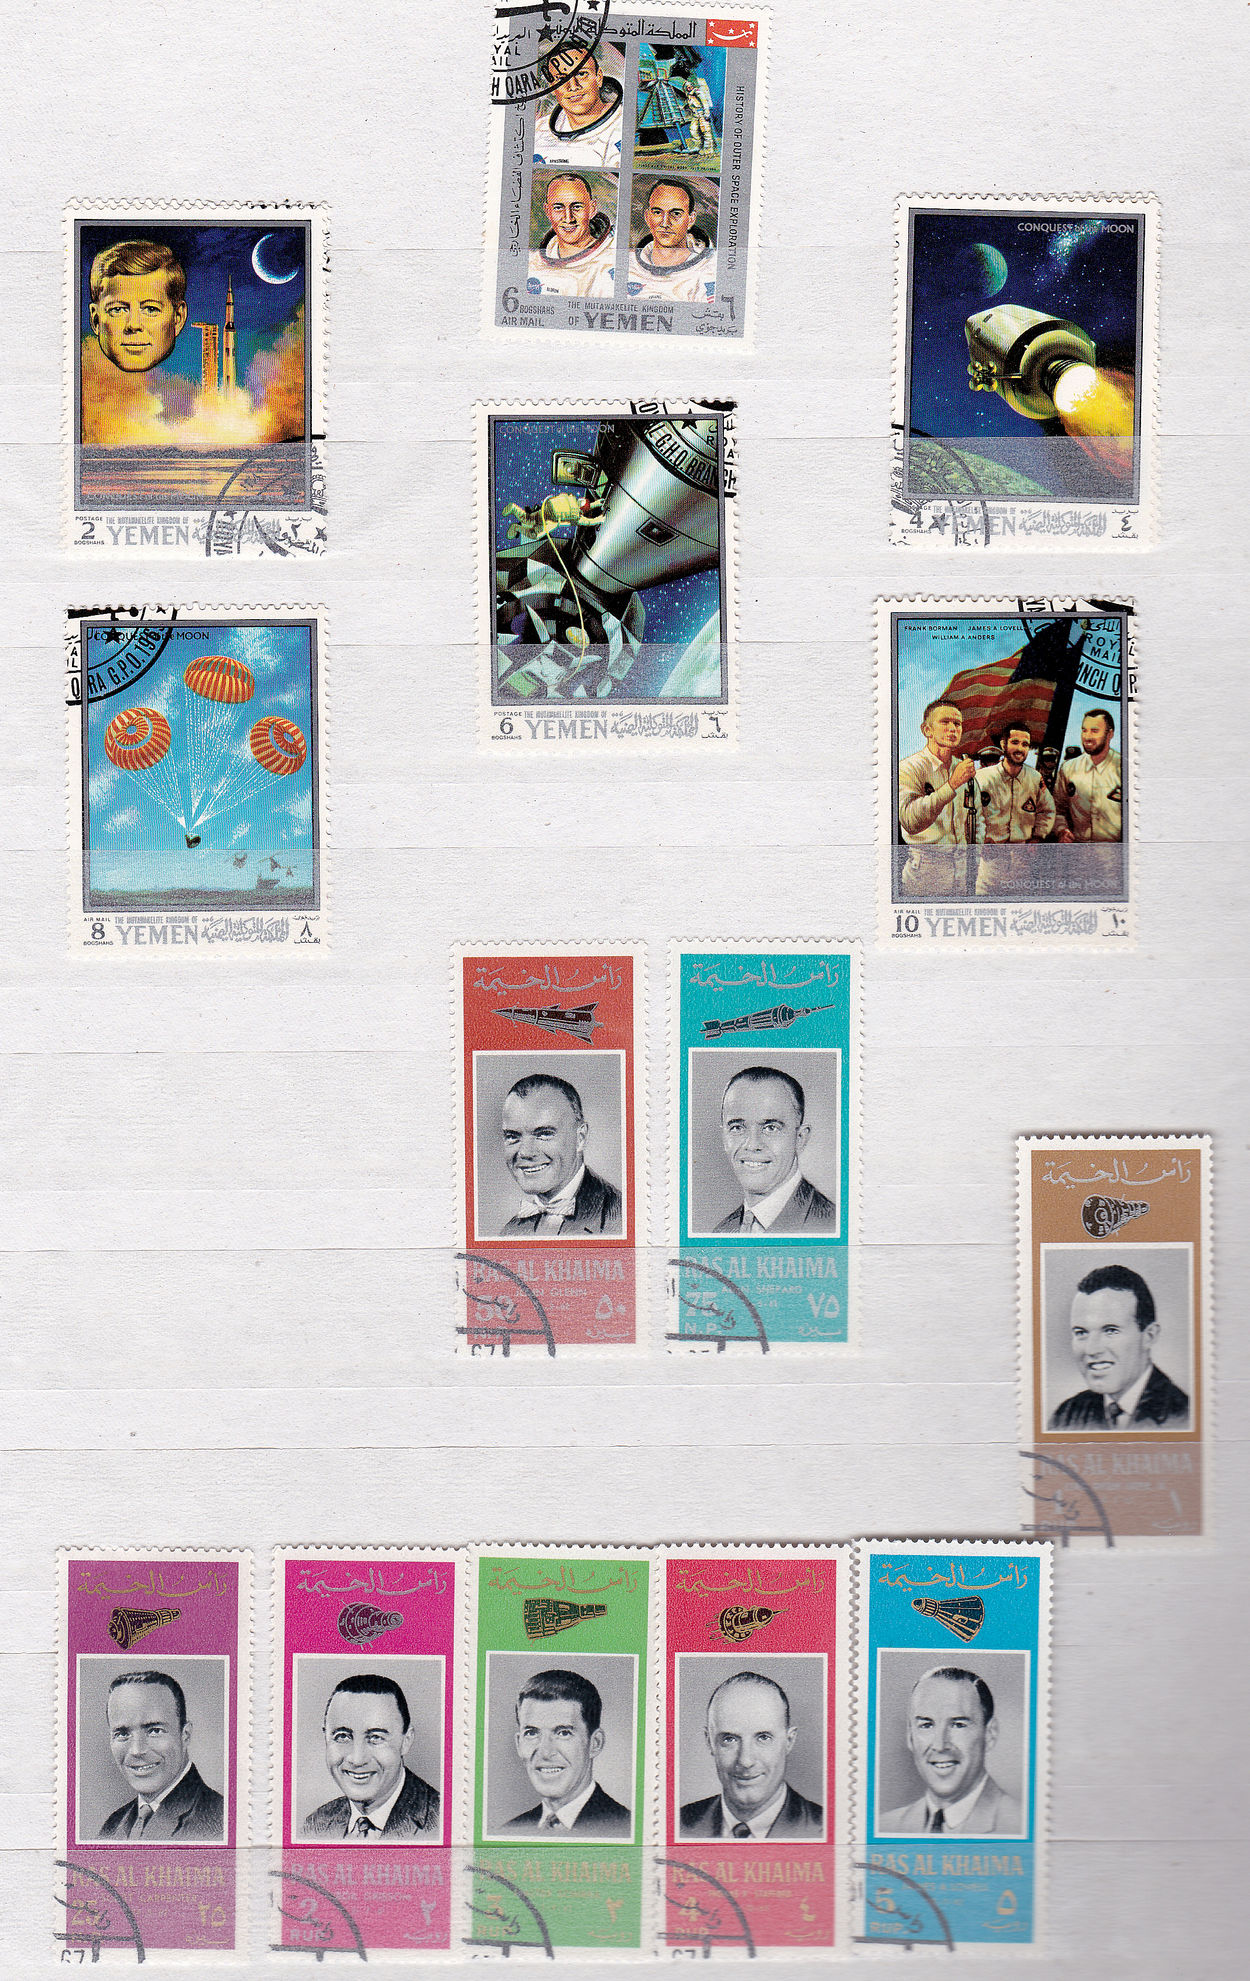 Apollo 8 Apollo Space Missions Lovell - Anders - Borman - Apollo 8 Yemen Space Stamps Architecture Building Exterior Close-up Day Female Likeness Global Communications Greeting Card  Human Representation Male Likeness No People Outdoors Photograph Travel Destinations